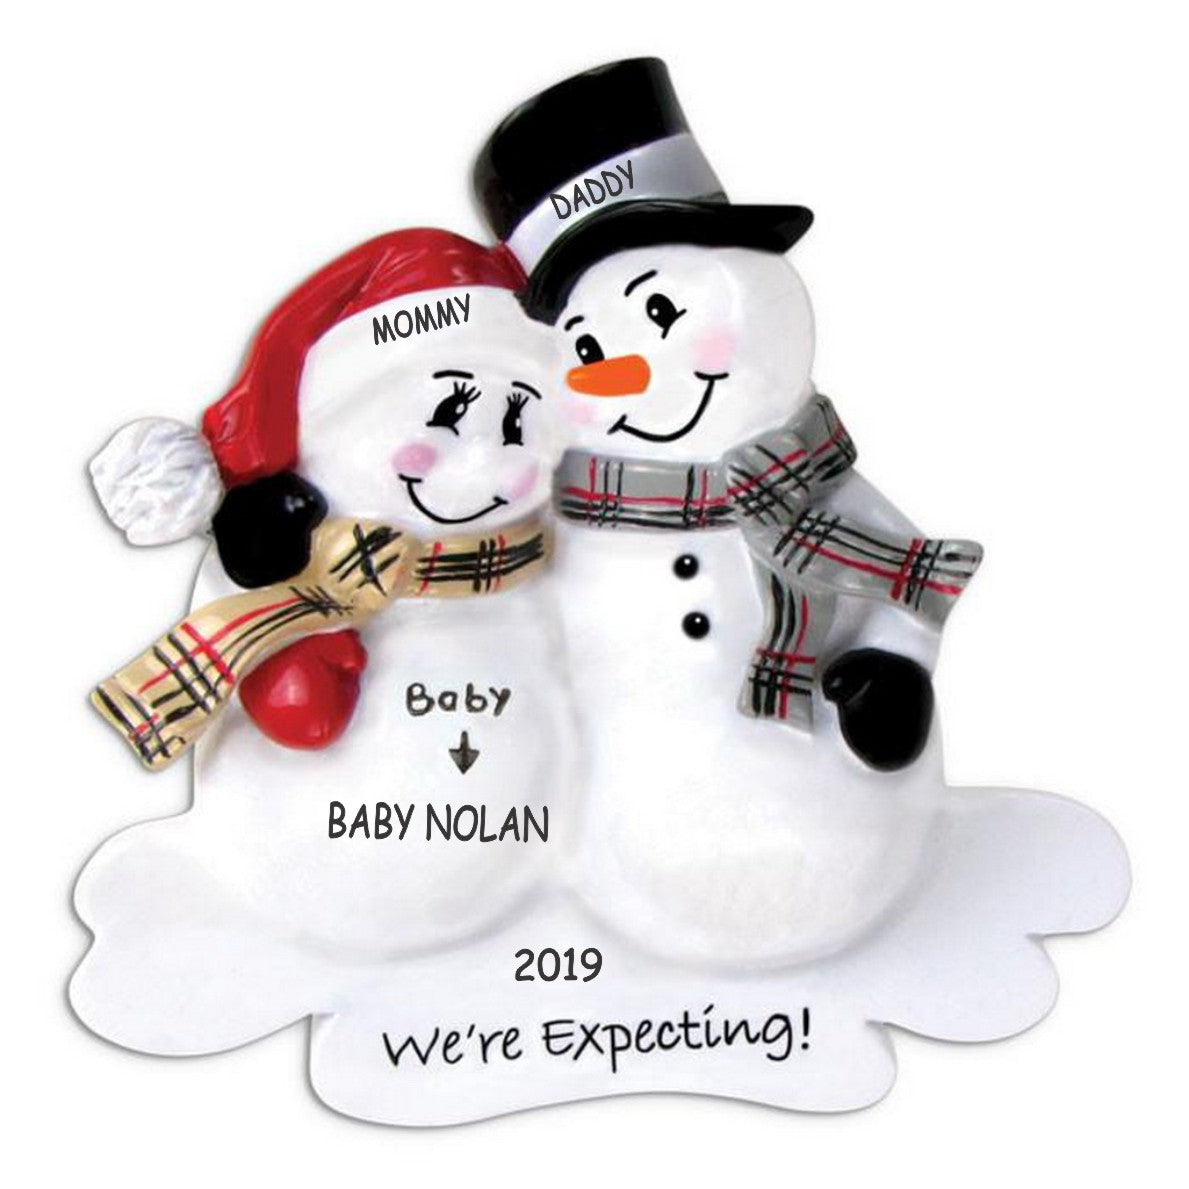 Personalized We're Expecting Snowman Family Christmas Ornament - Family of 3